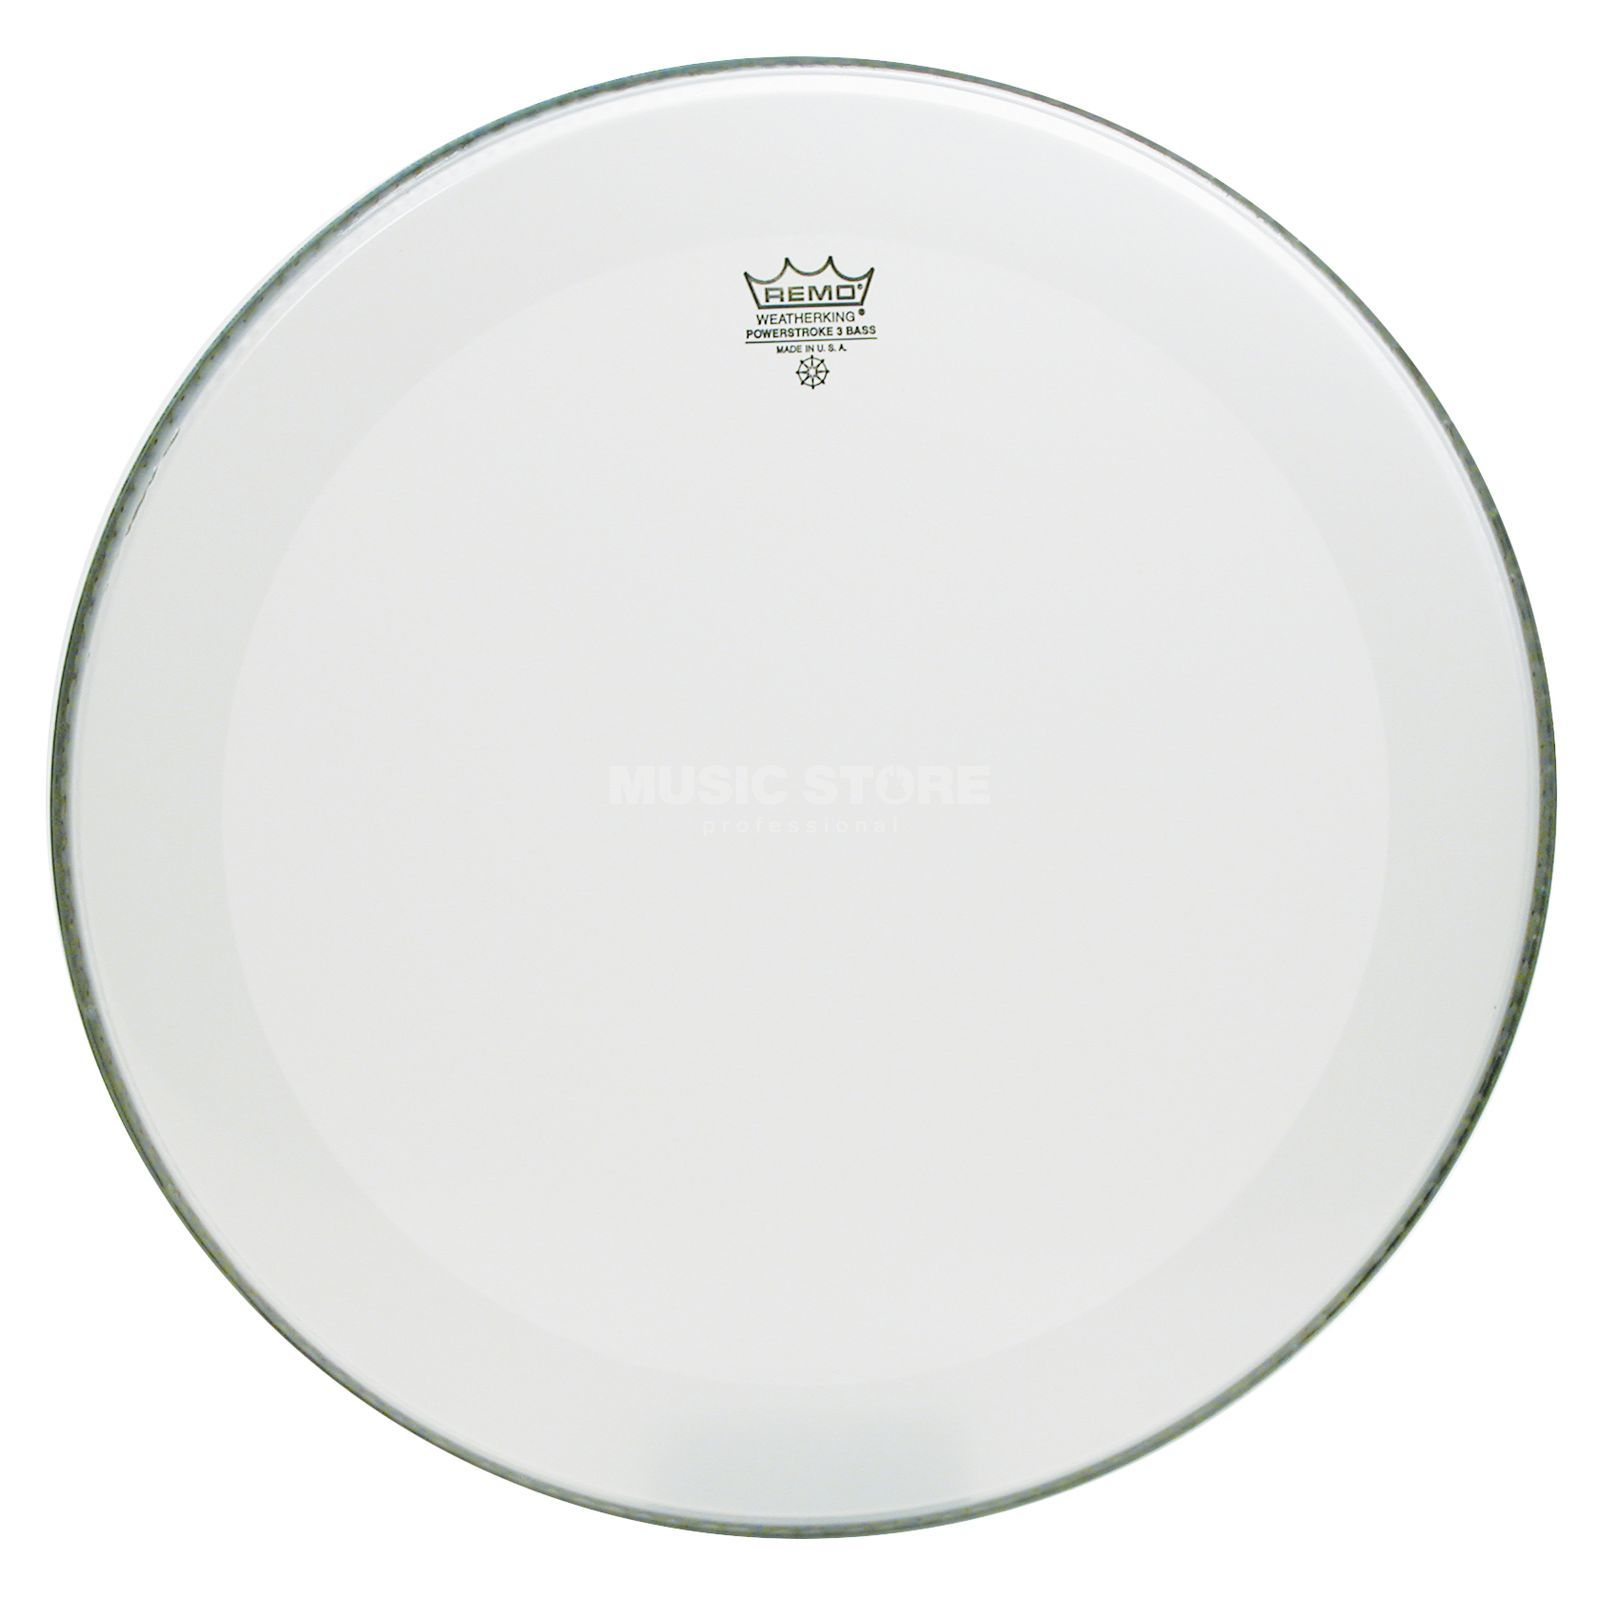 "Remo Powerstroke 3 Smooth White 24"" BassDrum Batter/Reso Изображение товара"